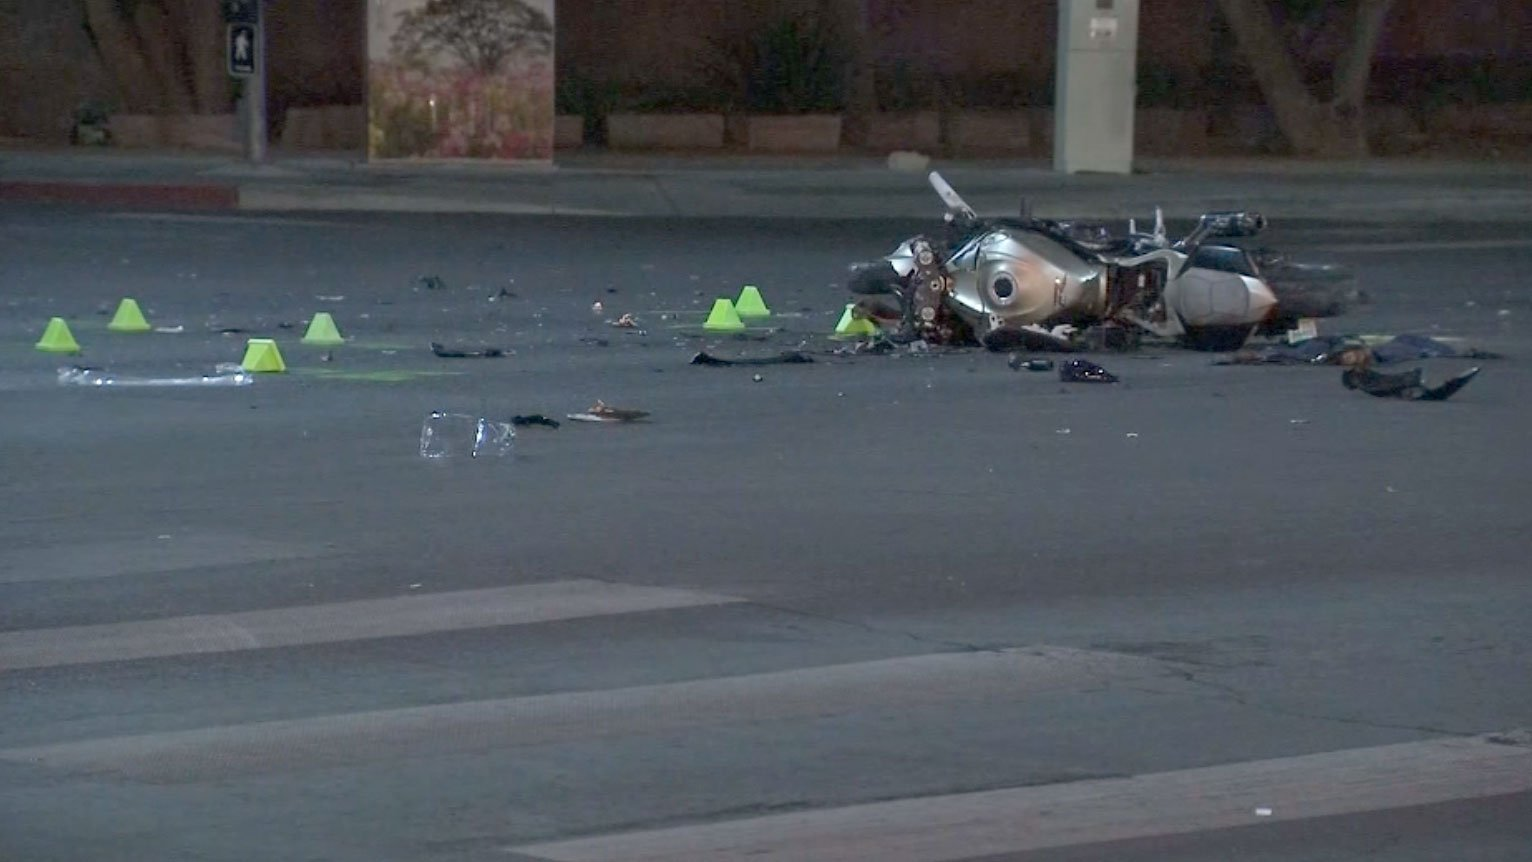 North Las Vegas police said a motorcyclist was in critical condition following a crash on Aug. 8, 2017. (Armando Navarro/FOX5)